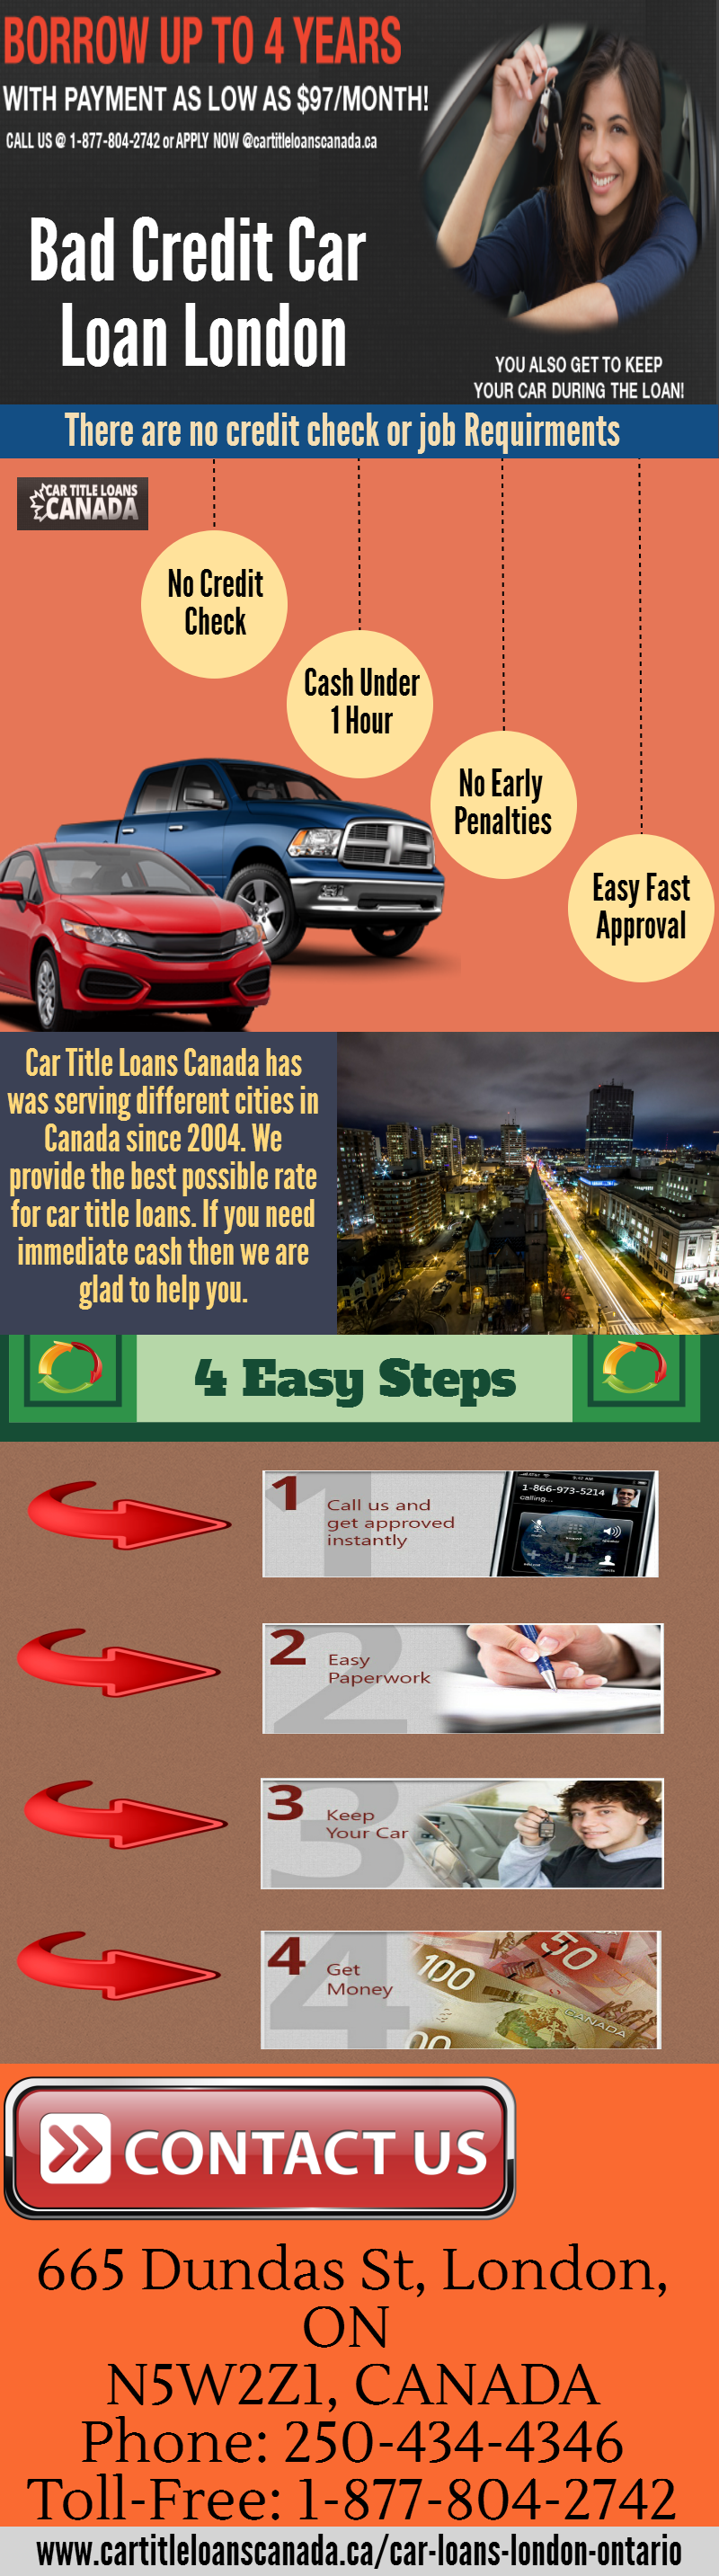 Get A Hassle Free Car Title Loans In London Our Loan Scheme Based On The Price Of Your Vehicle And Programs Loans For Bad Credit Car Loans Bad Credit Car Loan